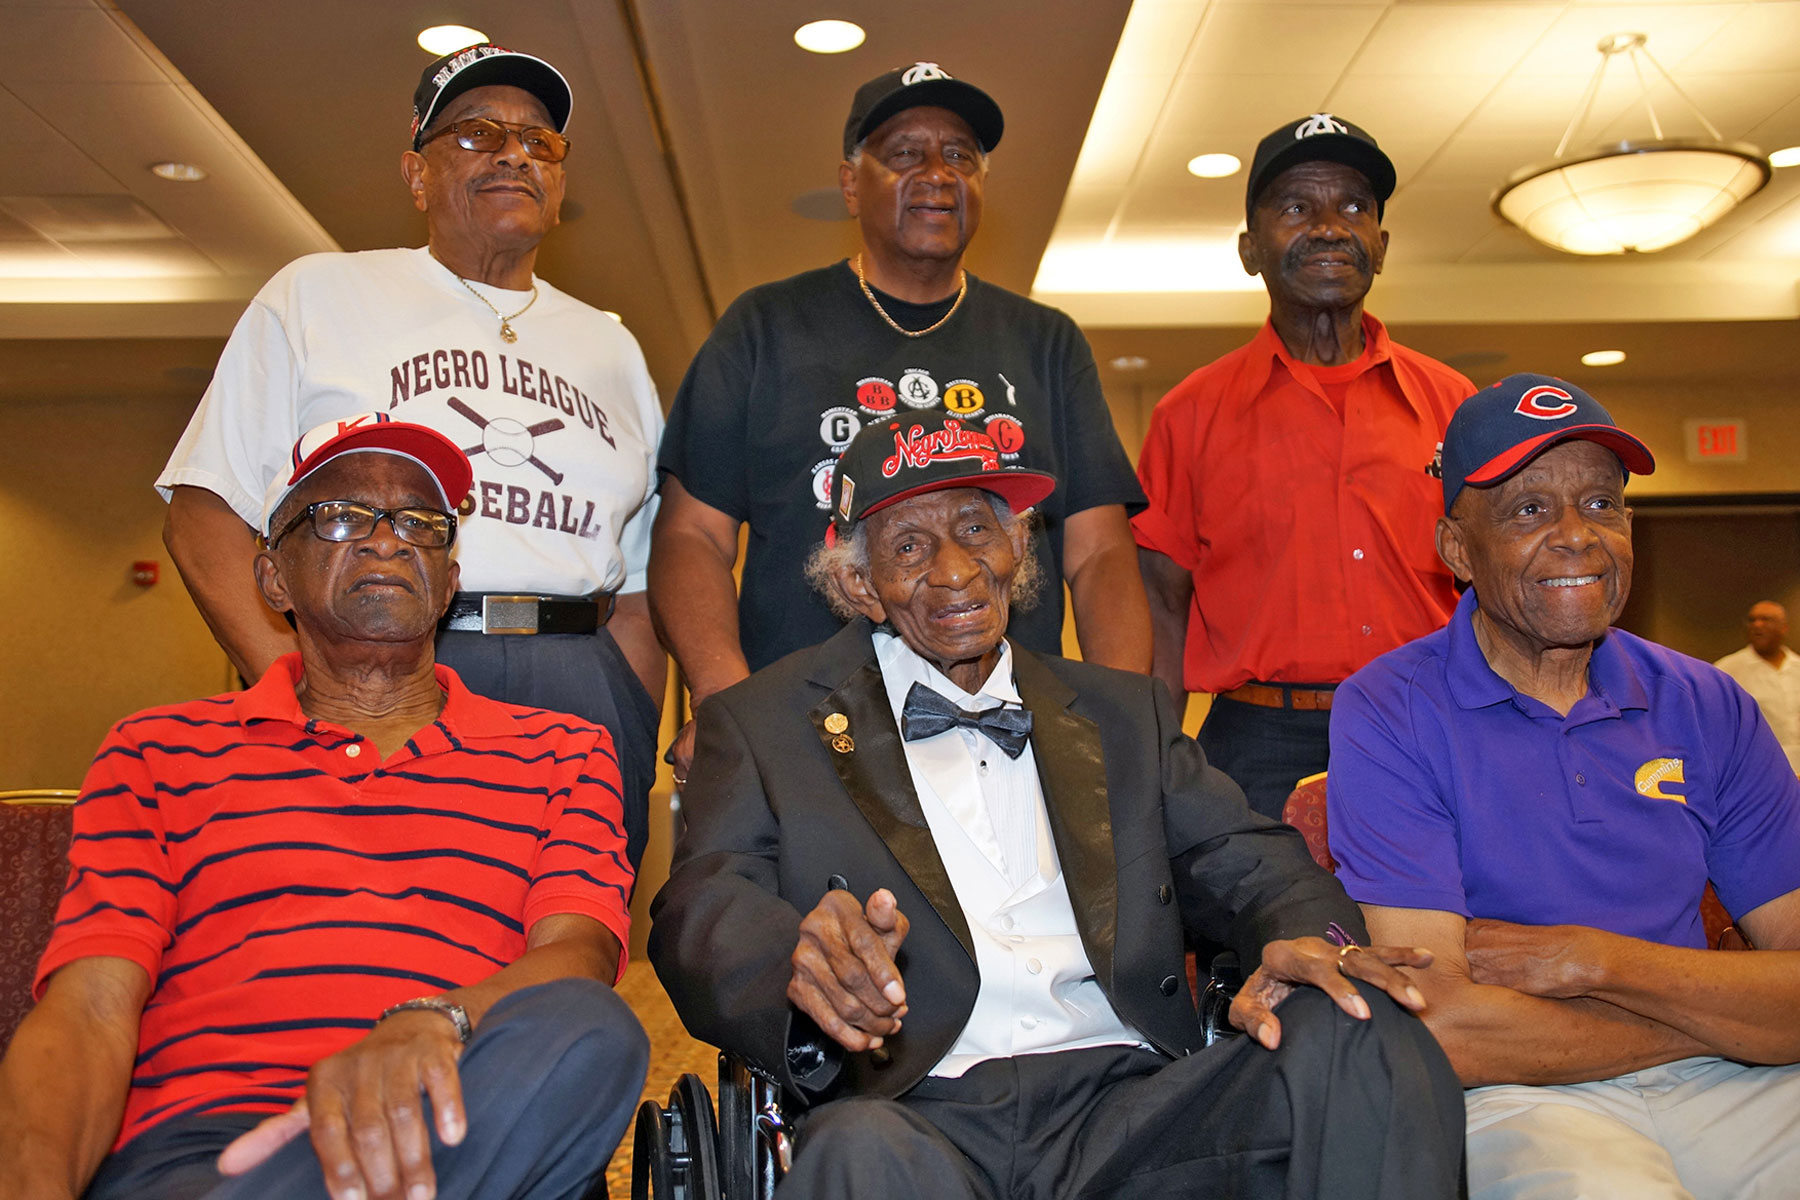 a0eab61d805 After the Milwaukee Brewers honored Negro Baseball League players during a  special Tribute Game at the Miller Park Stadium on June 25